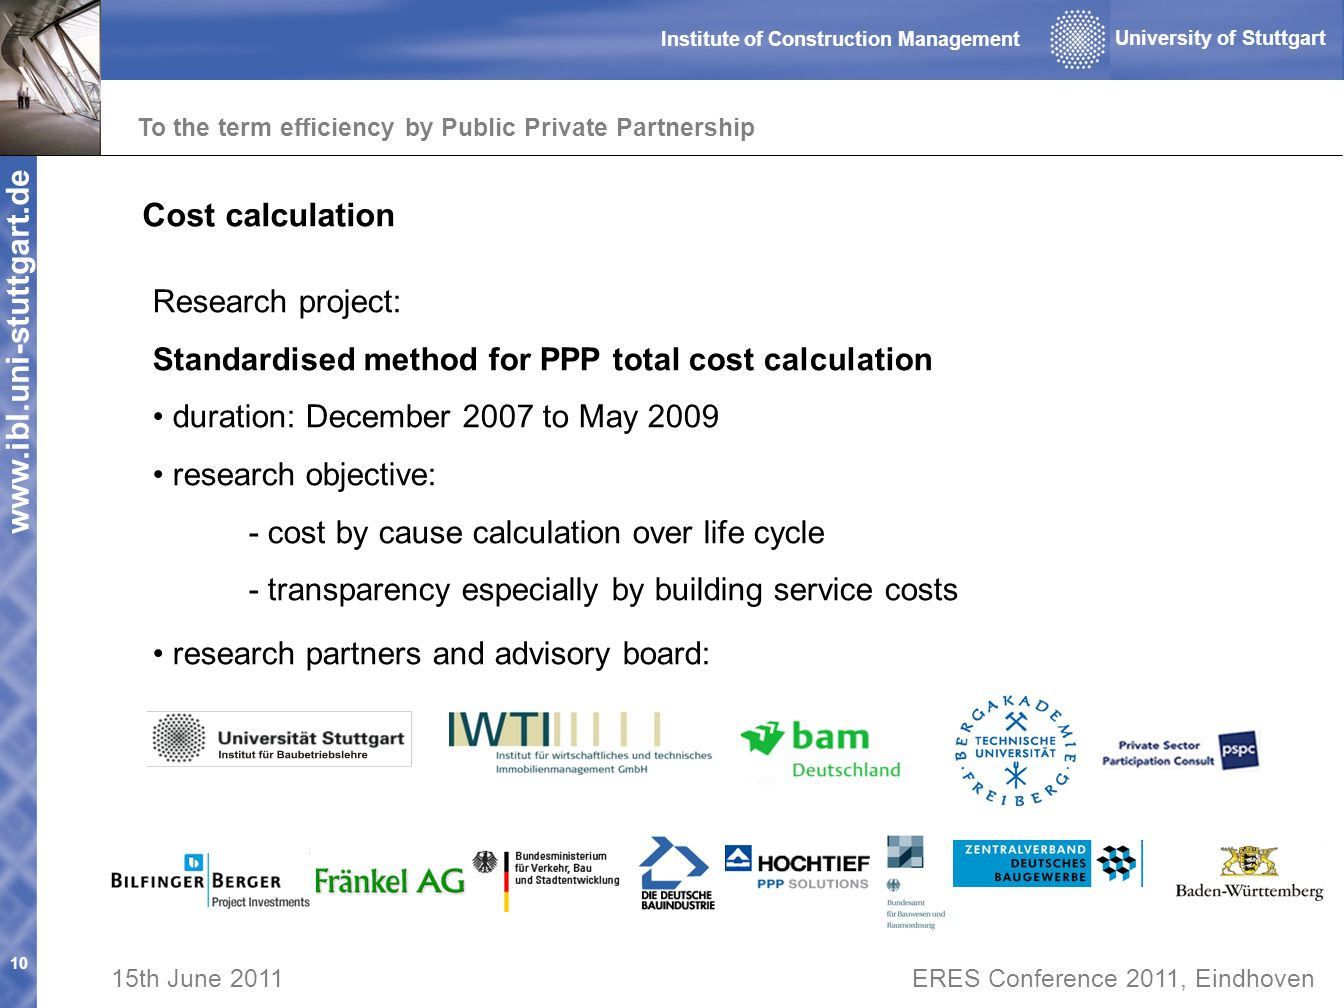 www.ibl.uni-stuttgart.de To the term efficiency by Public Private Partnership 10 University of Stuttgart Institute of Construction Management 15th June 2011ERES Conference 2011, Eindhoven Research project: Standardised method for PPP total cost calculation duration: December 2007 to May 2009 research objective: - cost by cause calculation over life cycle - transparency especially by building service costs Cost calculation research partners and advisory board: